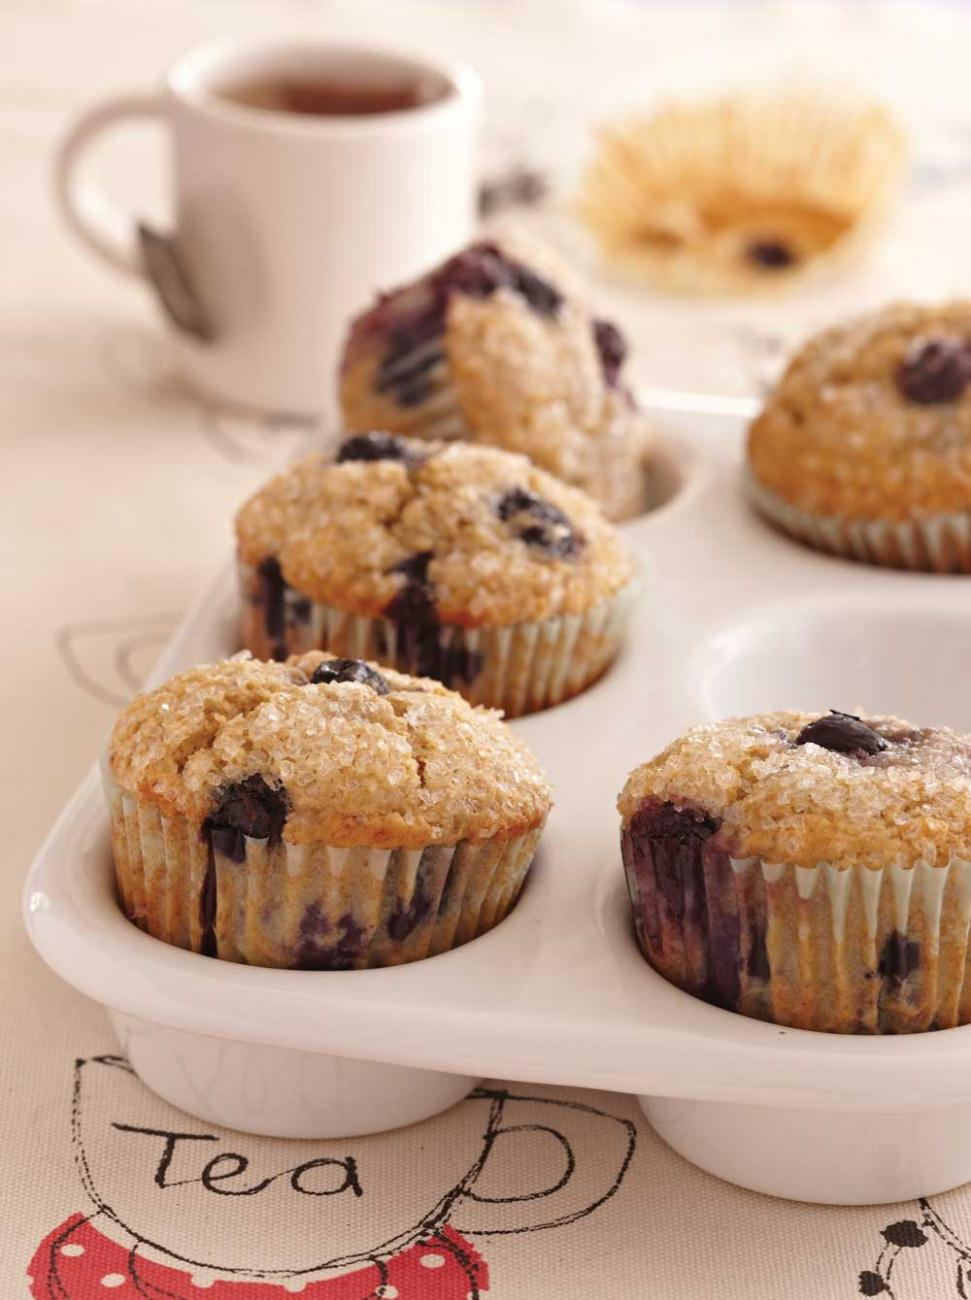 Recipe for Oat Bran–Banana-Blueberry Muffins